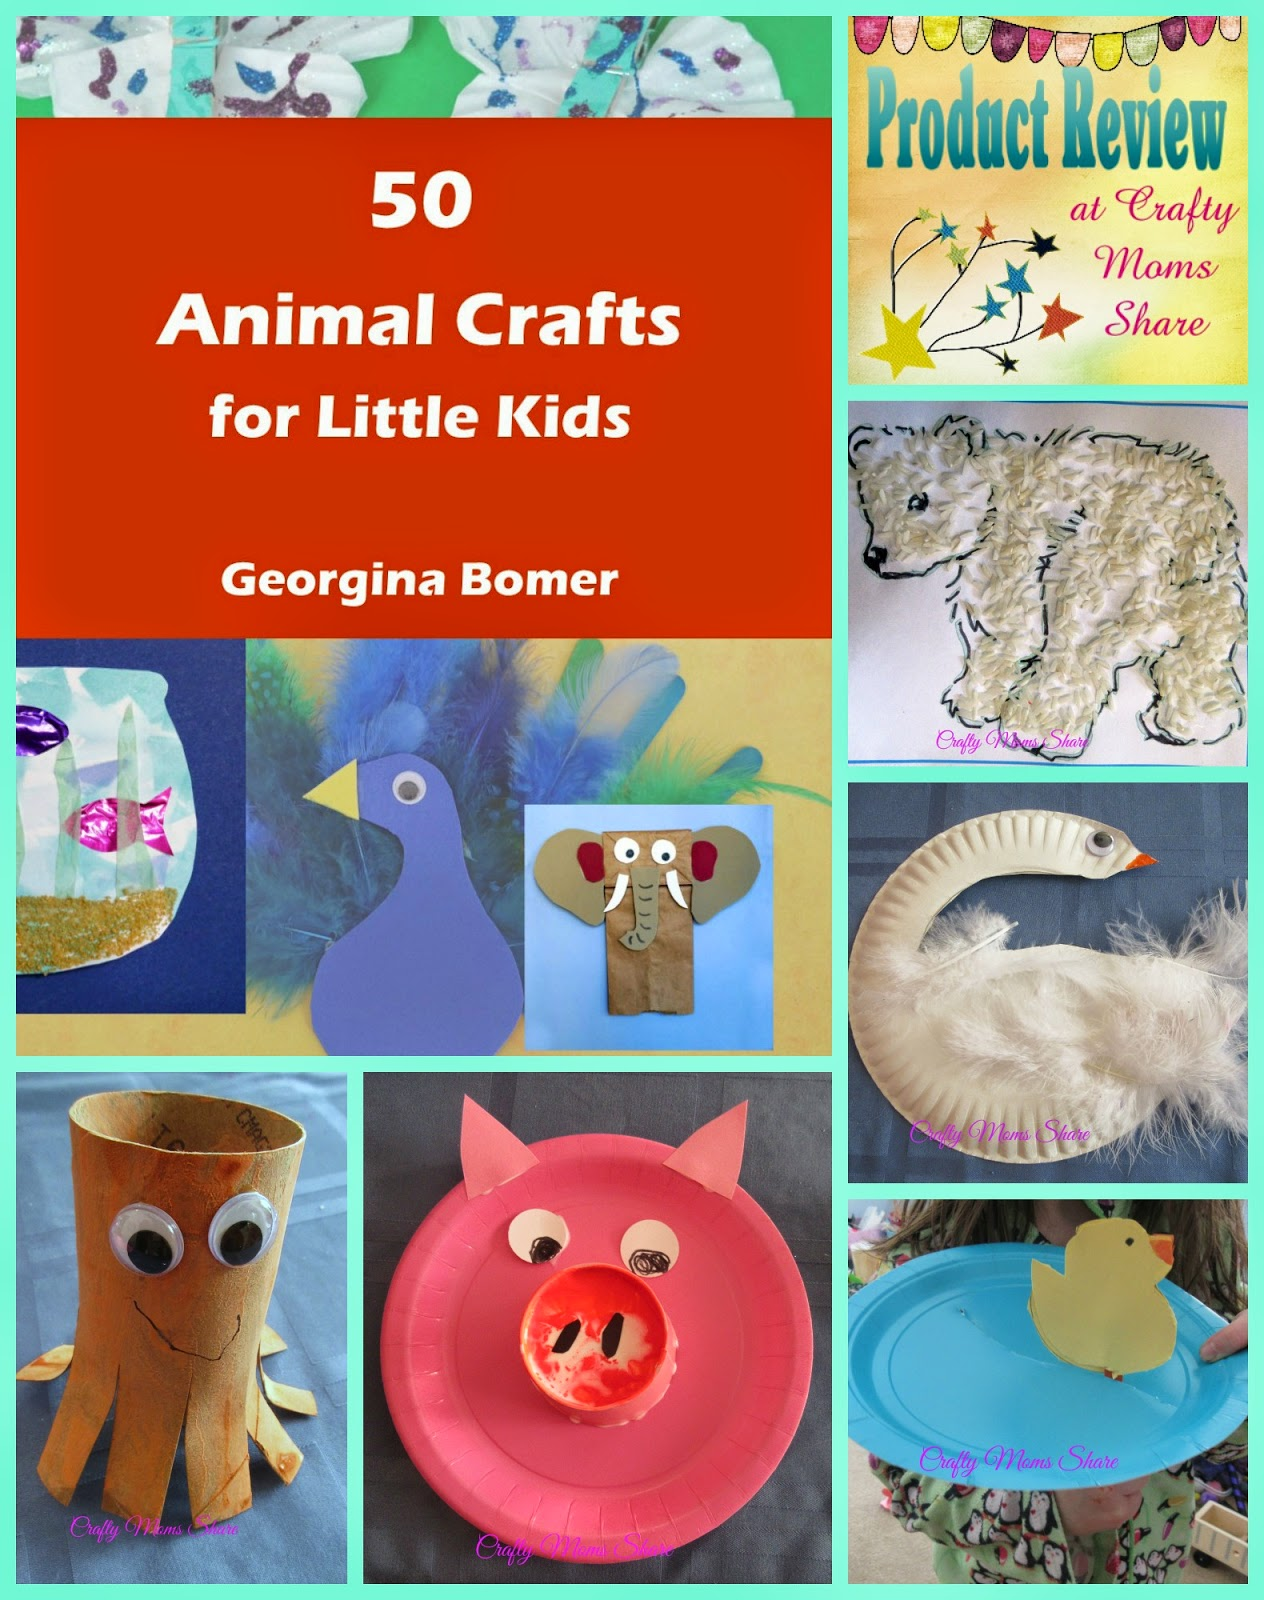 crafty moms share 50 animal crafts for little kids book